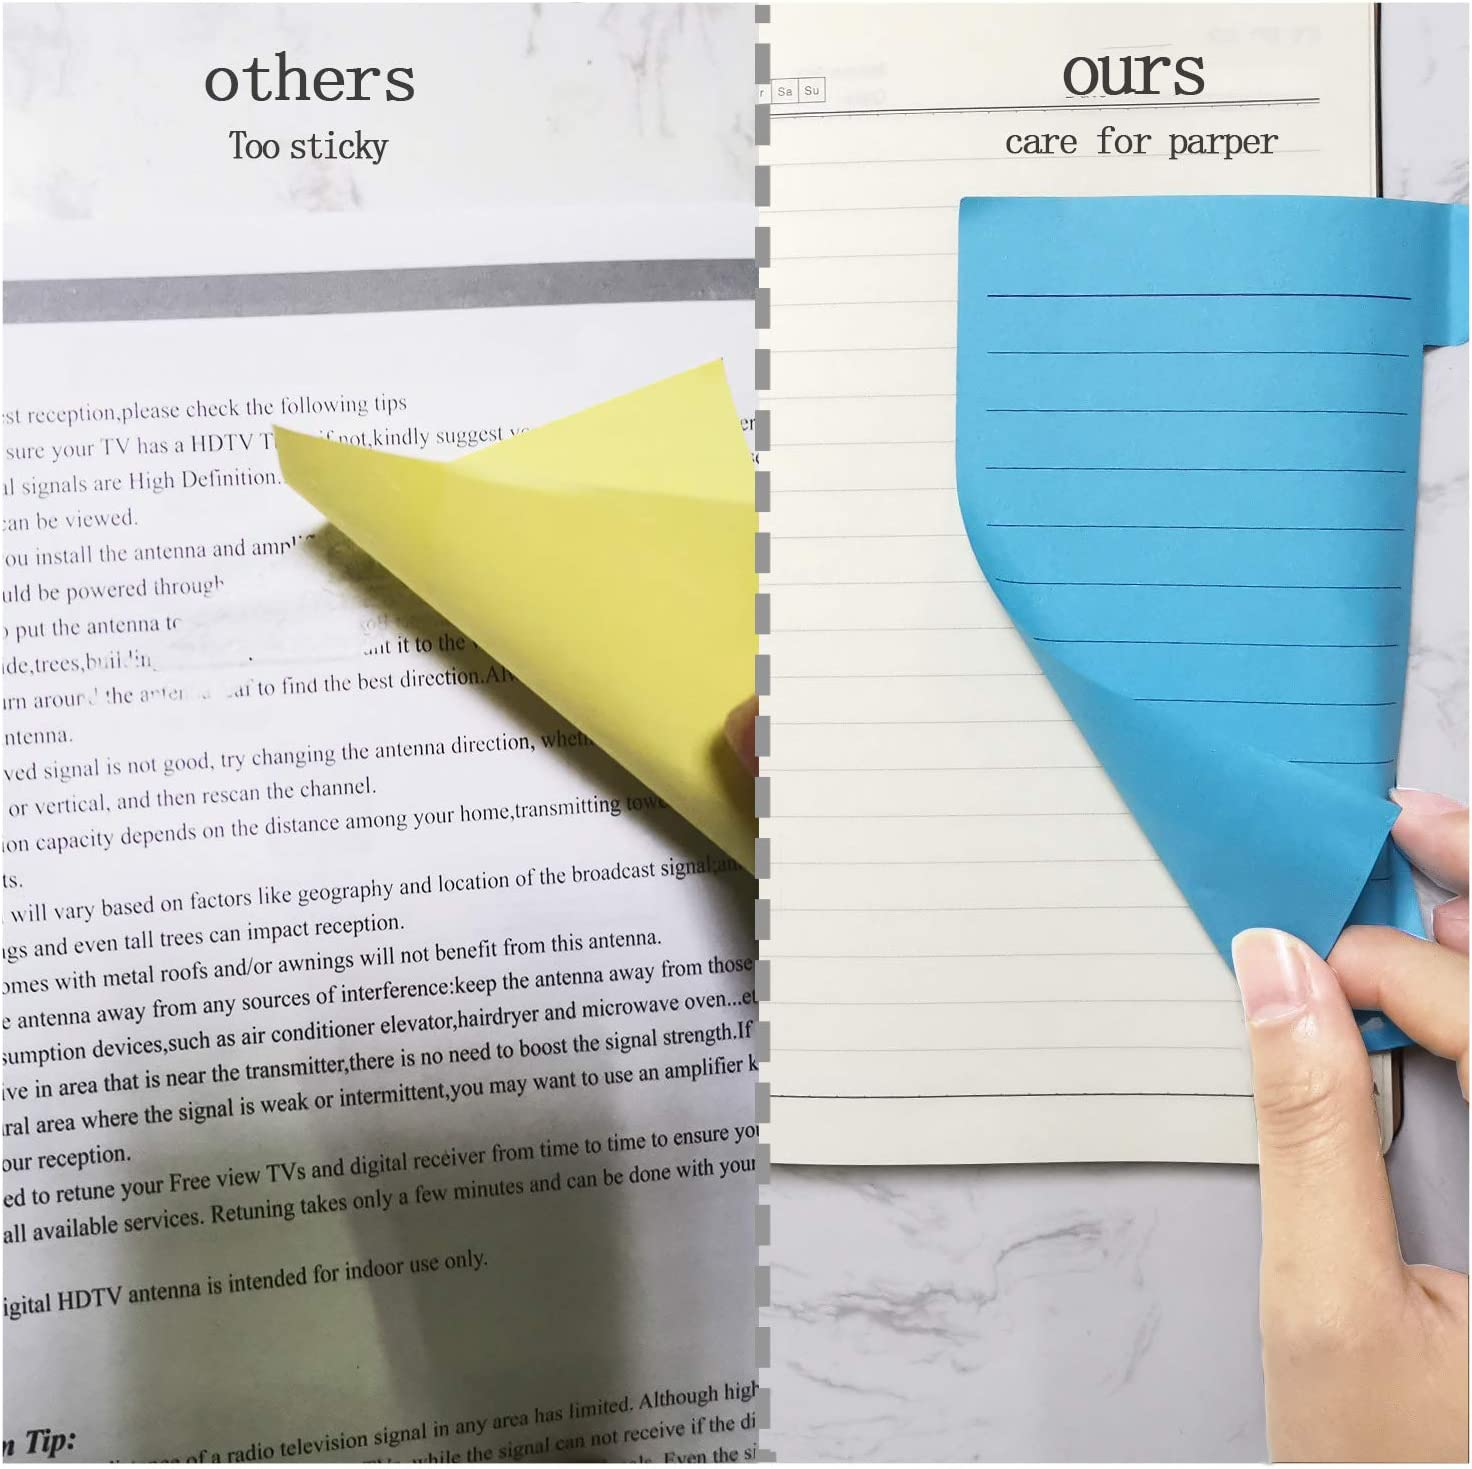 Divider Sticky Notes Self-Stick Lined Note Pads 60 Ruled 40 Blank 40 Dotted 4x6 4x3 Self-Stick Pads 4x2.6